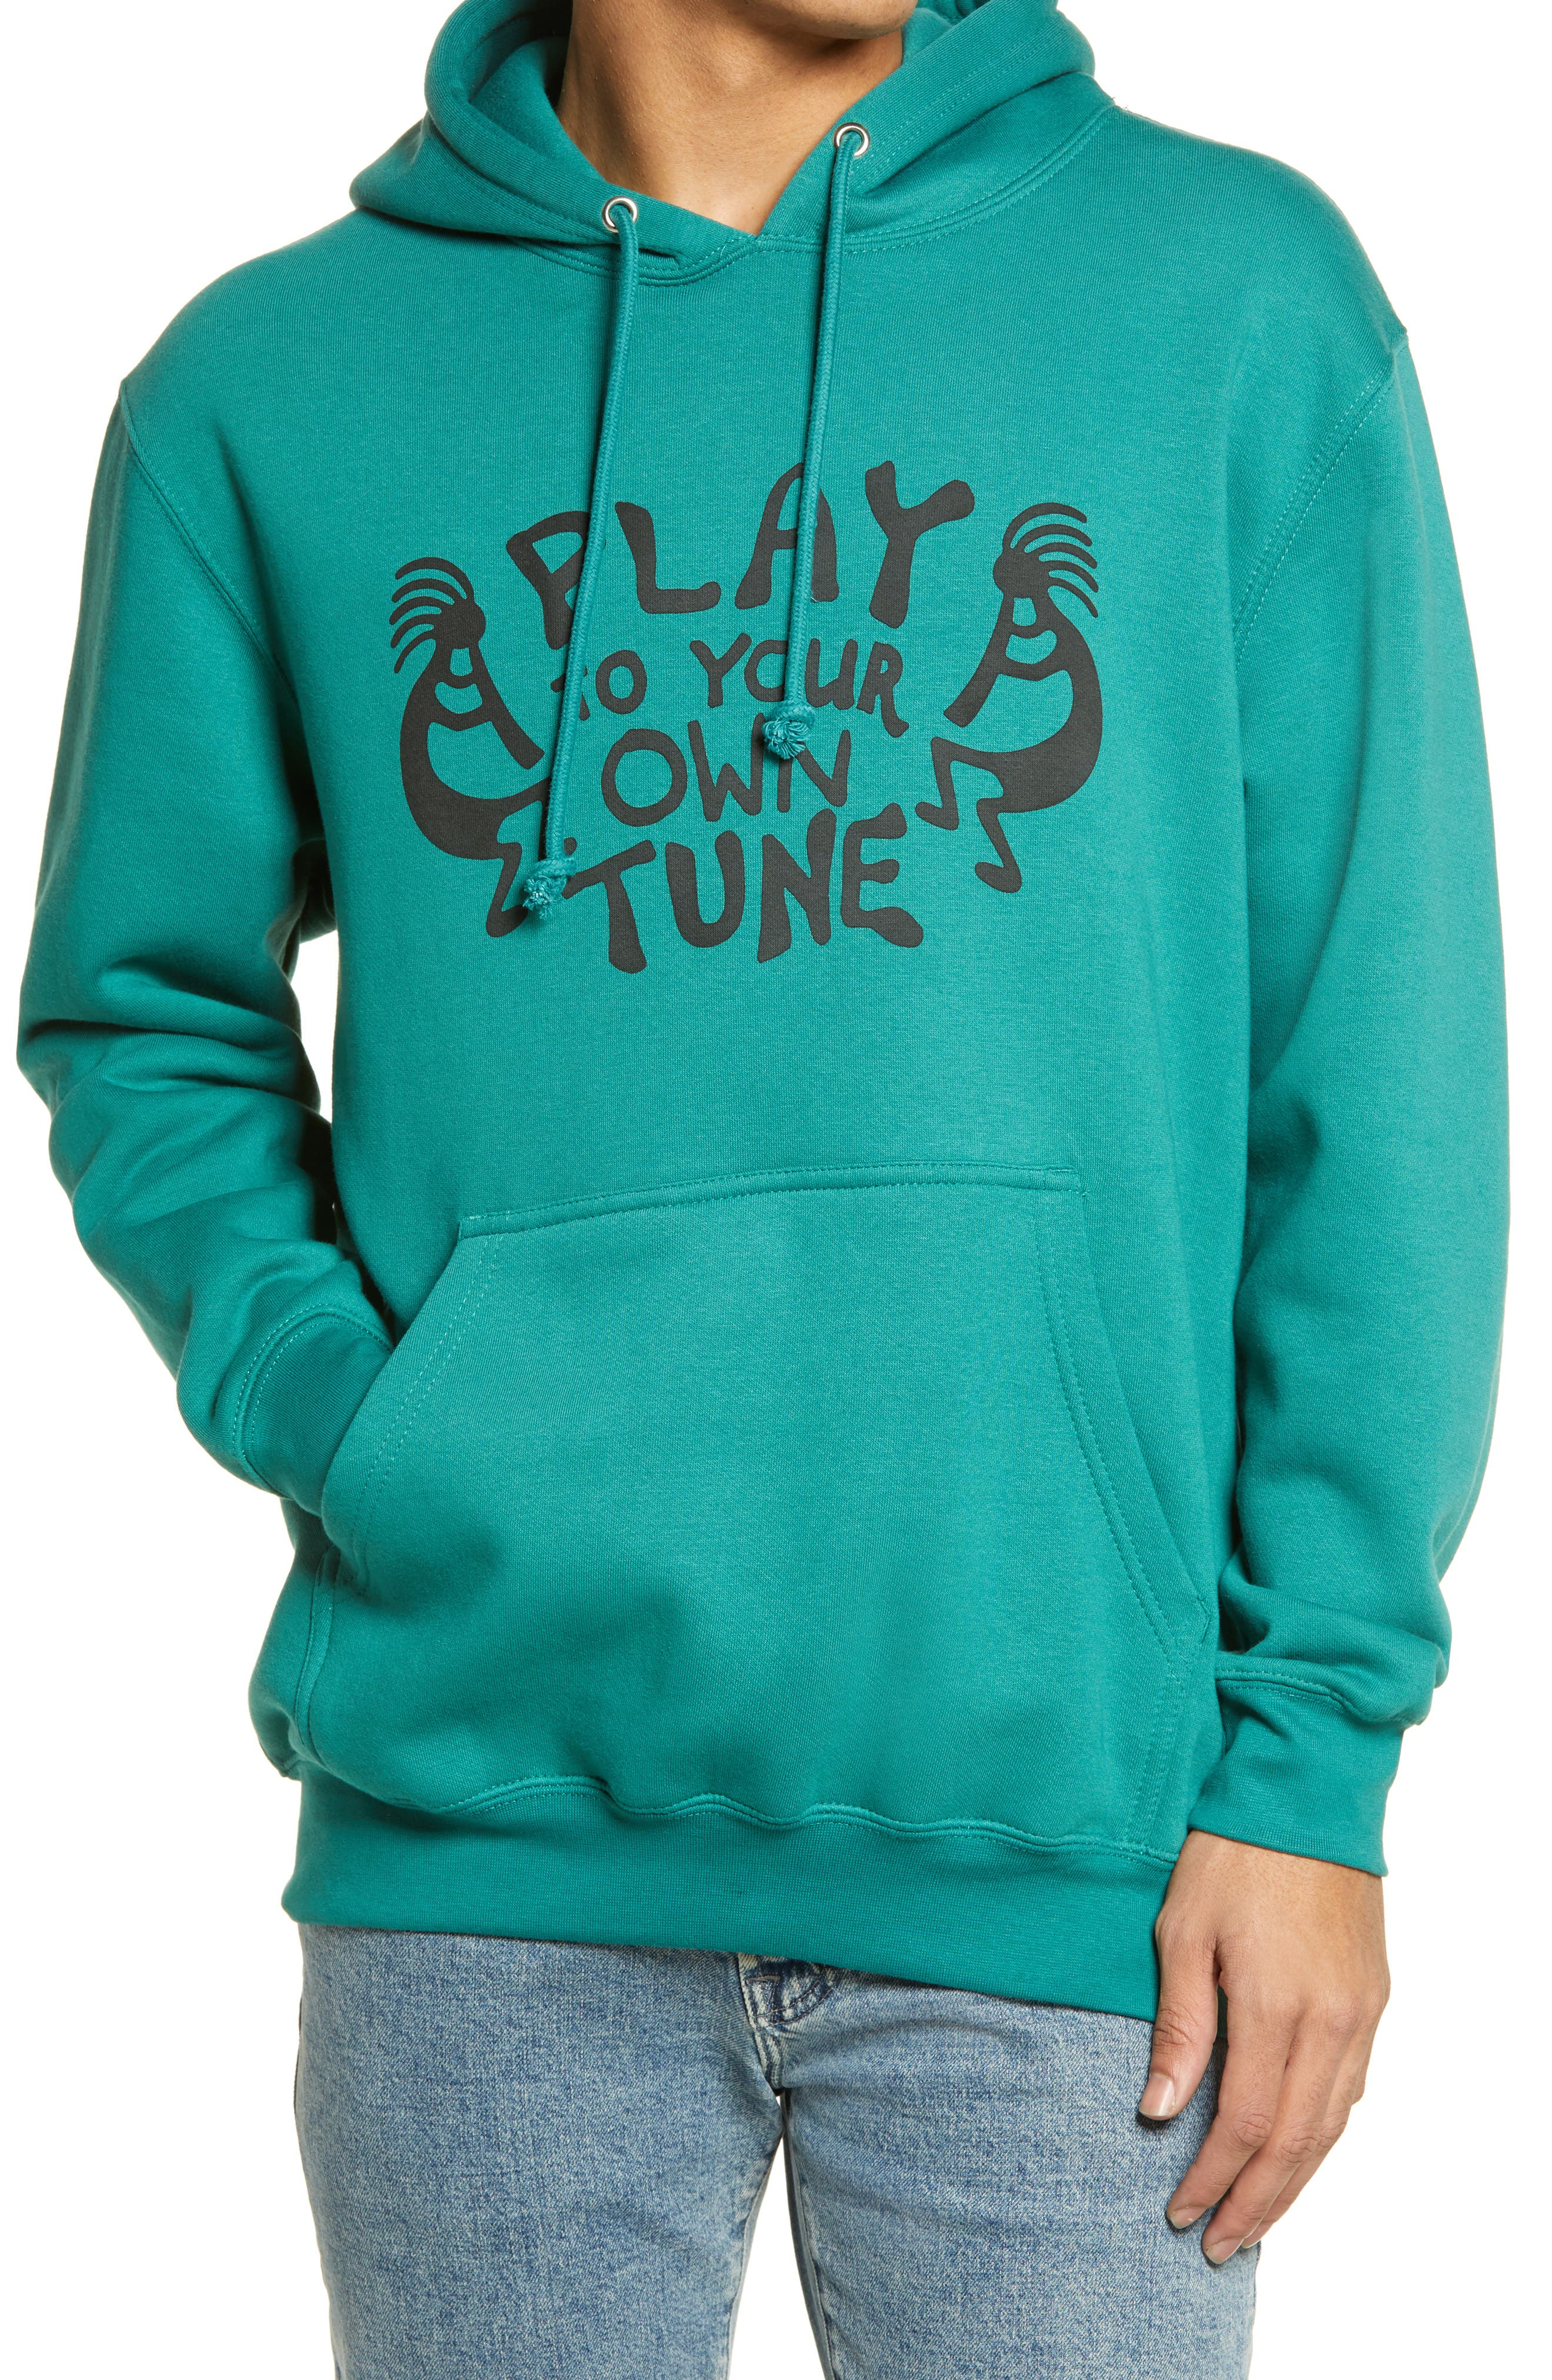 Play Your Own Tune Men's Hoodie